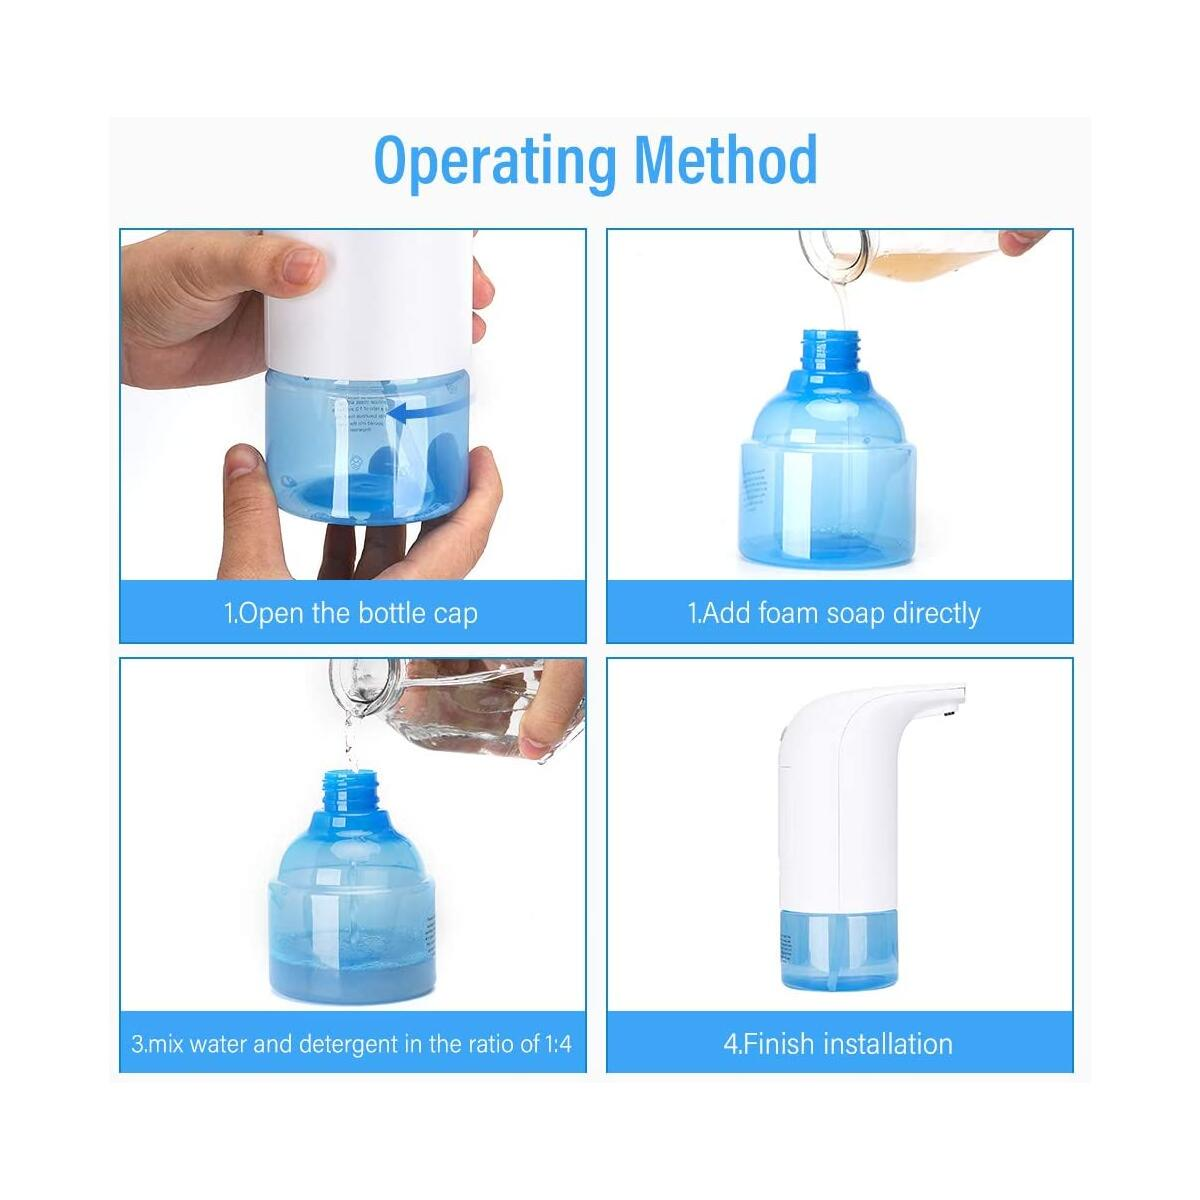 JEXICASE Touchless Soap Dispenser, 320ml/10.8oz Automatic Foam Soap Dispenser Suits for Kitchen/Bathroom Touch Free Soap Dispenser with Smart Sensitive Sensor White Hands Free Foaming Soap Dispenser